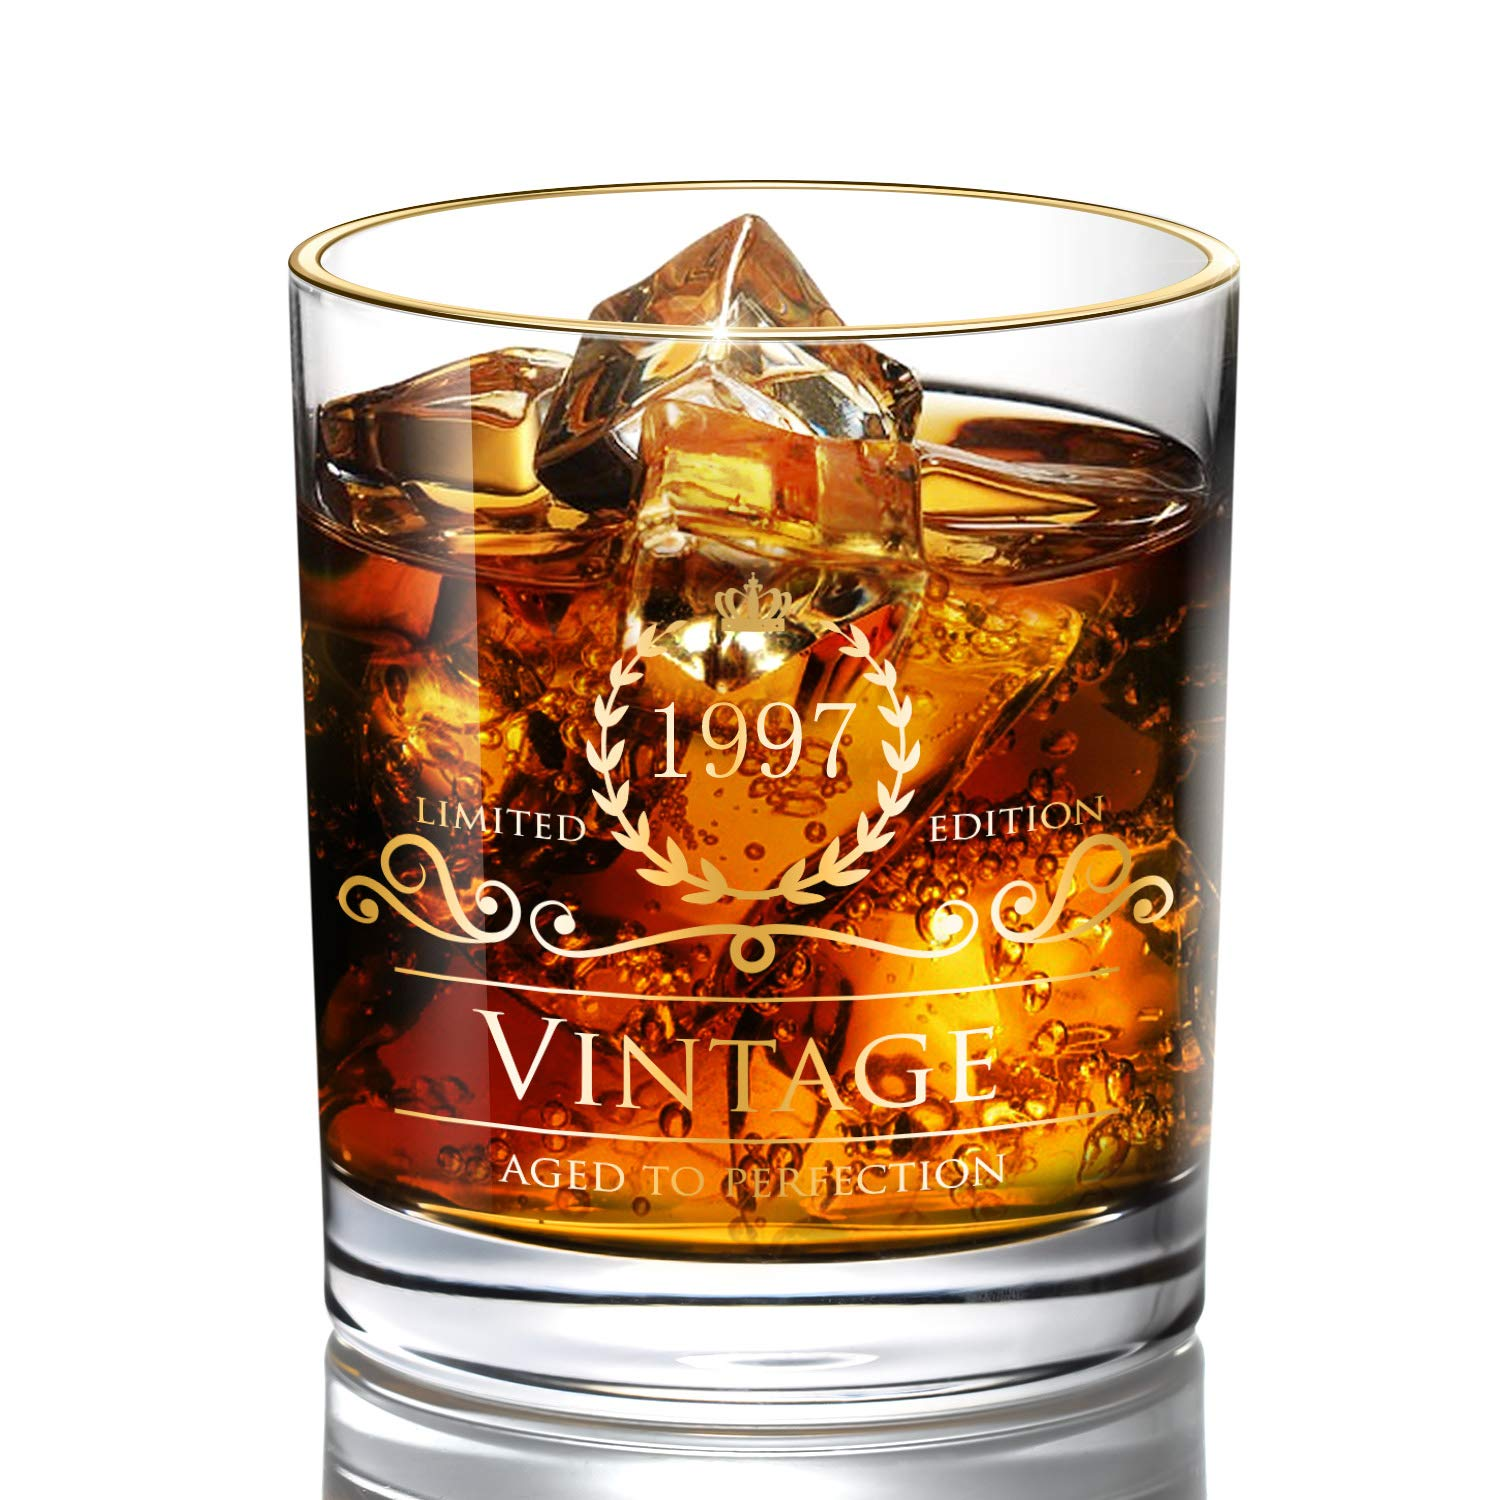 1948 70th Birthday Anniversary Gifts For Women Men Dad Mom Vintage Unfading 24K Gold Gilded Old Fashioned Whiskey Glasses Perfect Gift And Home Use